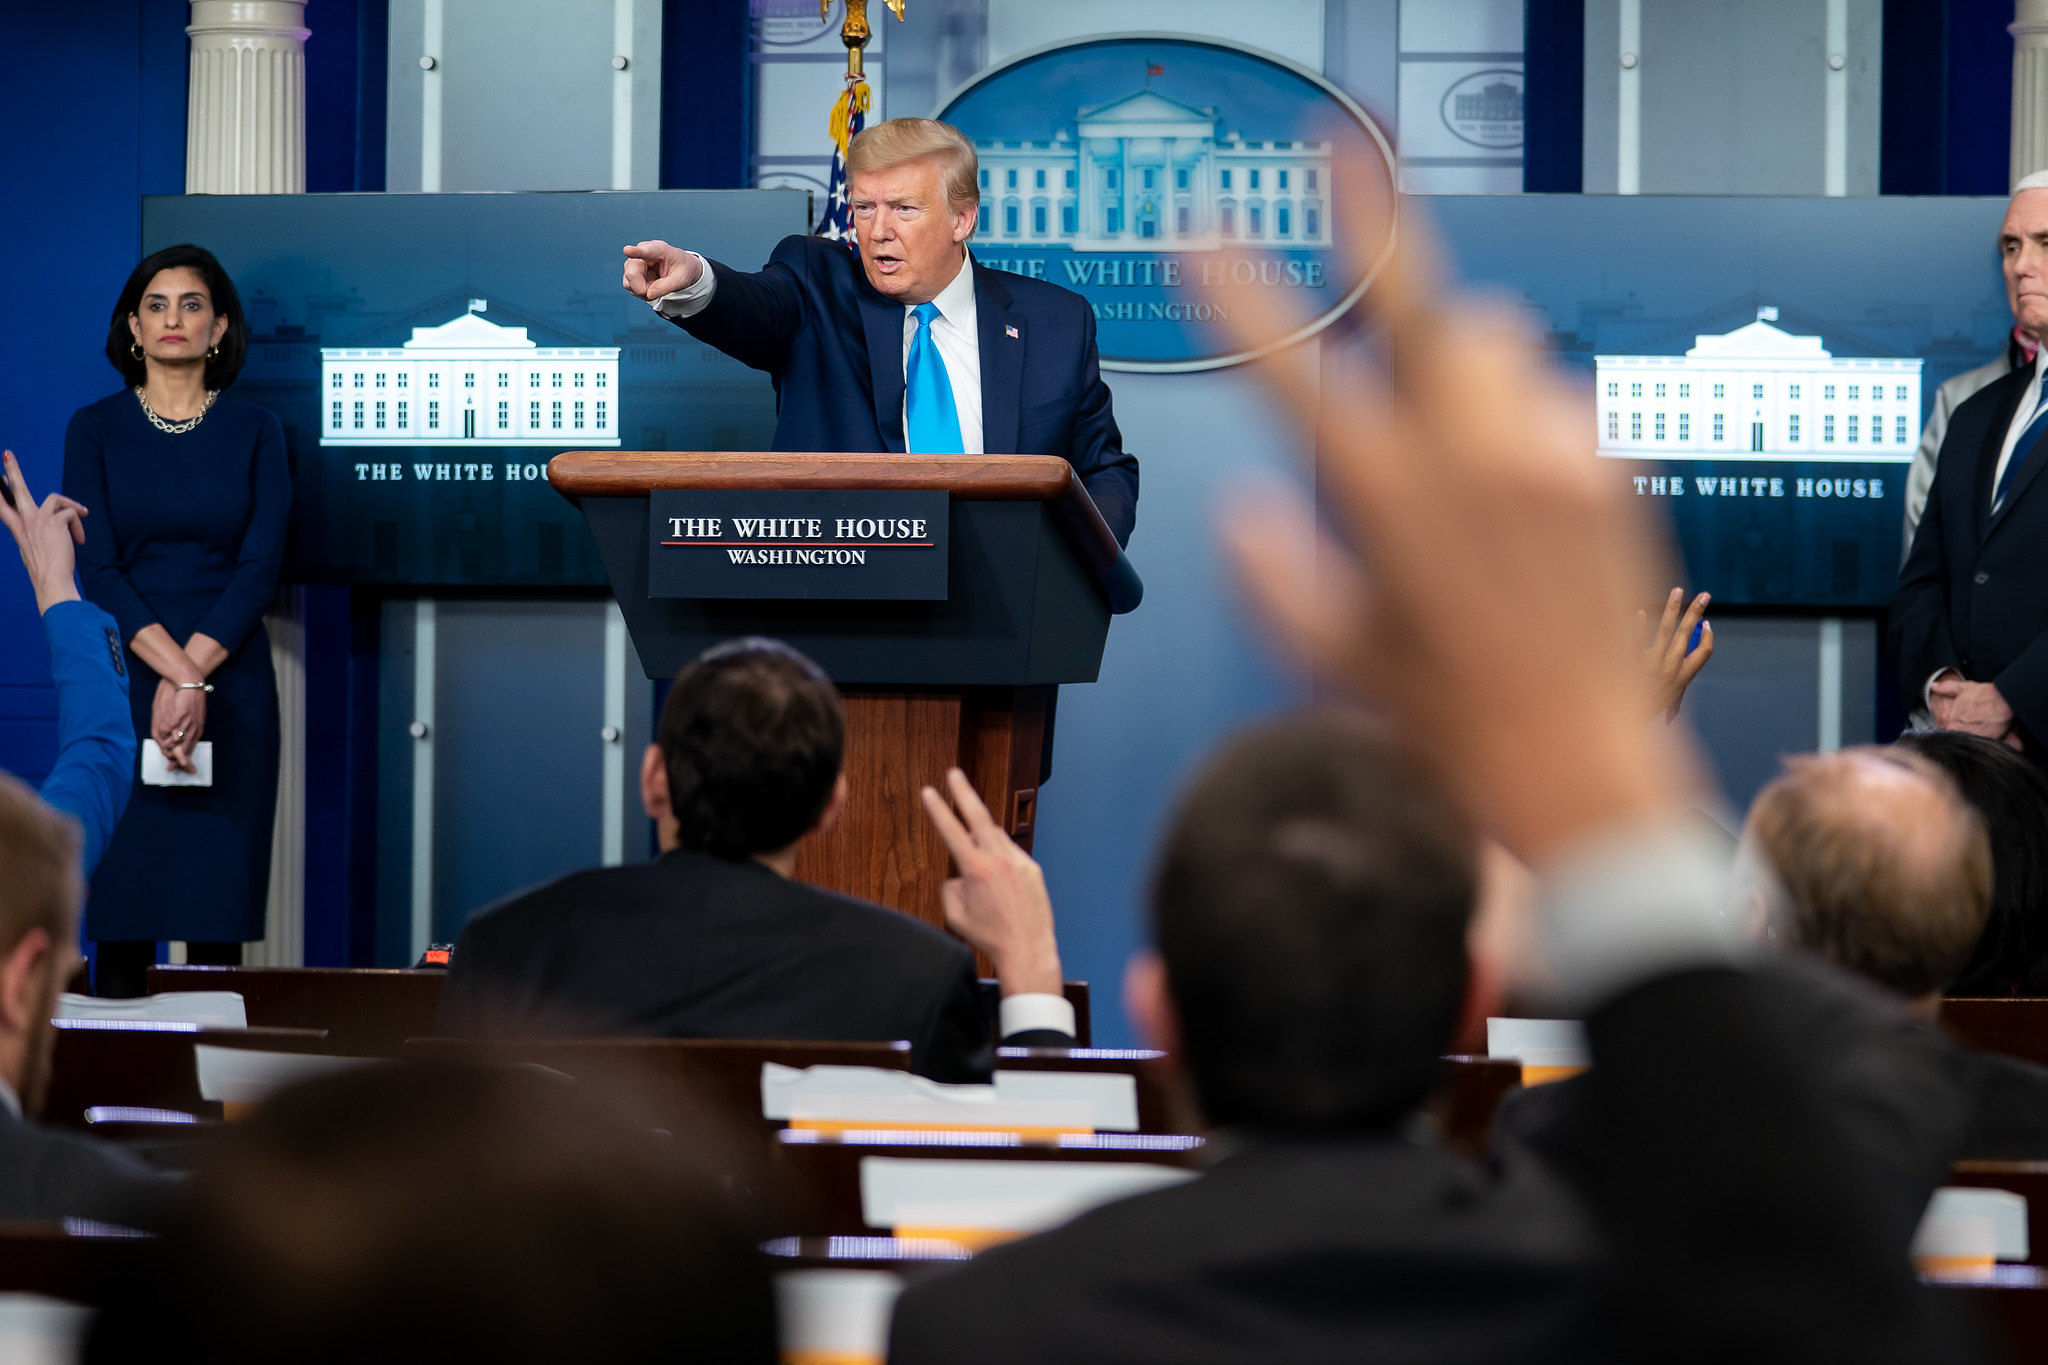 Donald Trump delivers remarks to the White House Press Corps